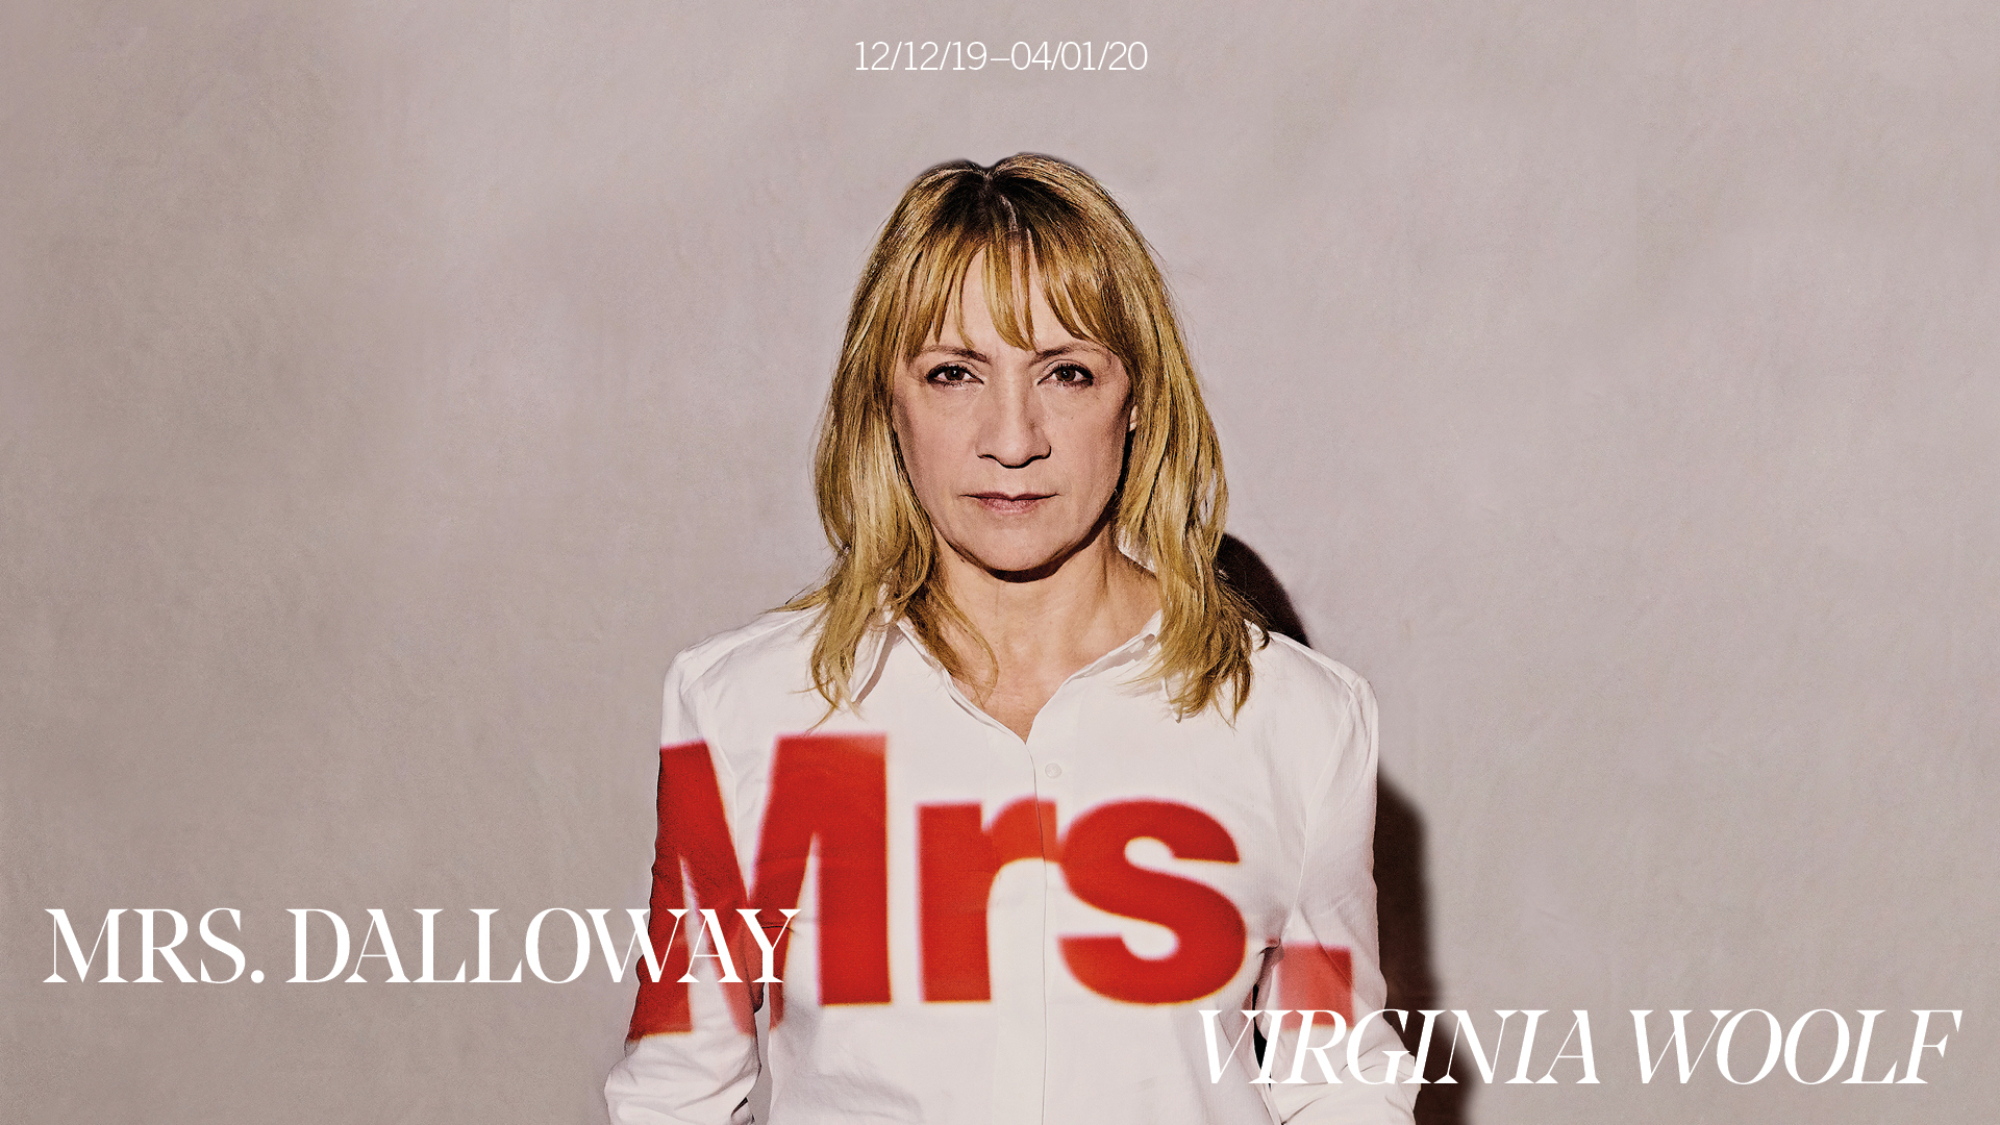 blanca portillo improrrogable.com mrs. dalloway teatro en barcelona